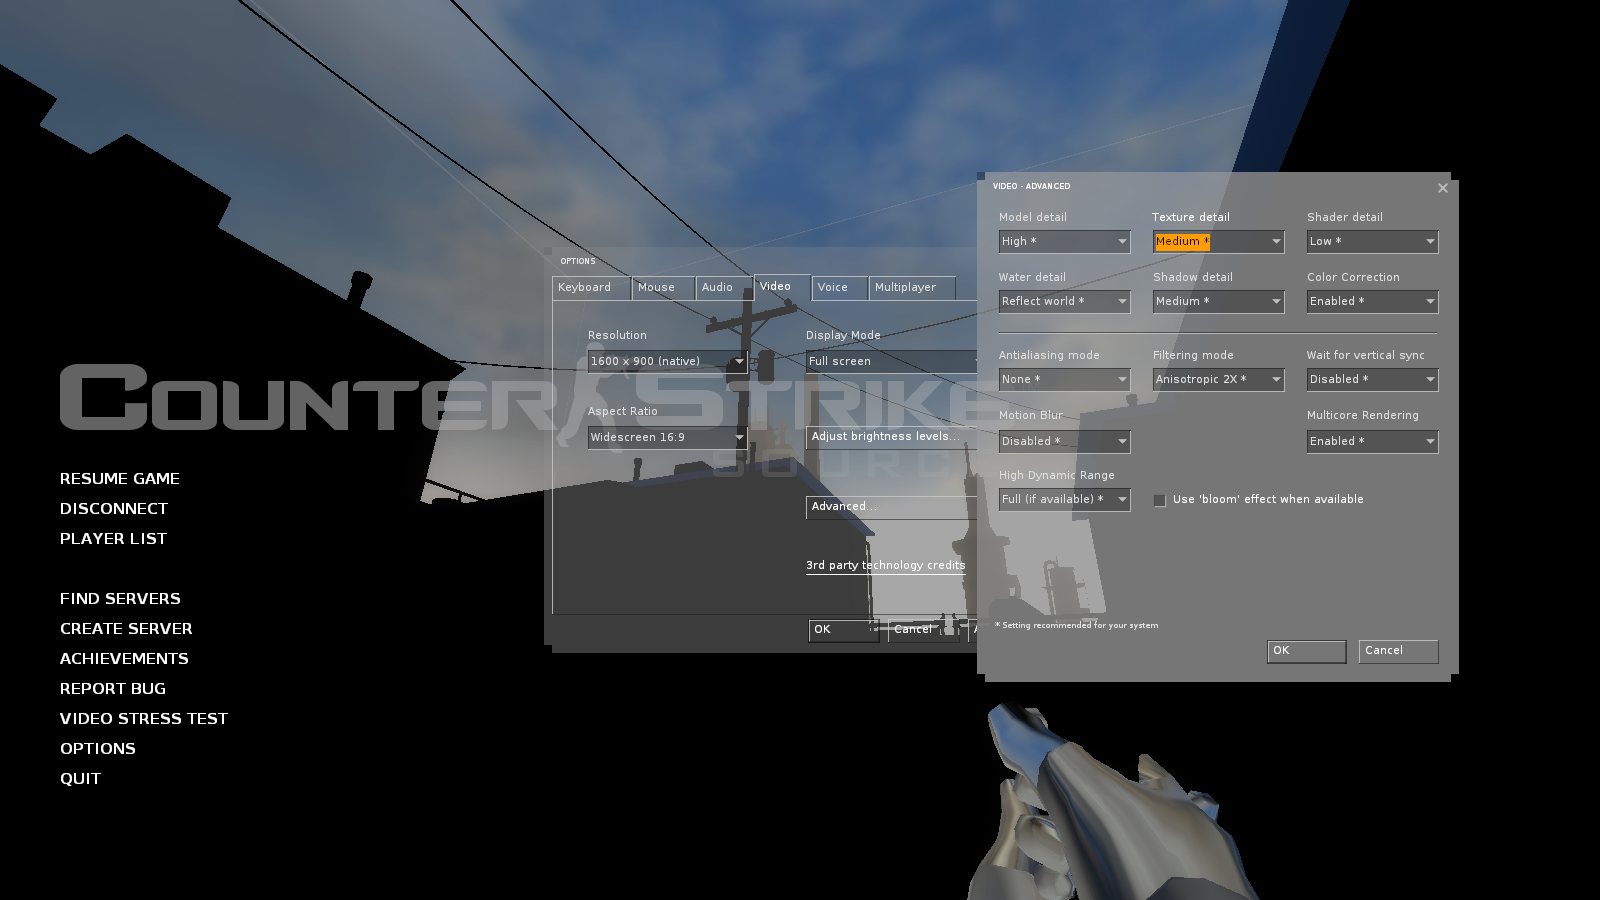 How to set up a microphone in the CC (Counter Strike) for a conversation